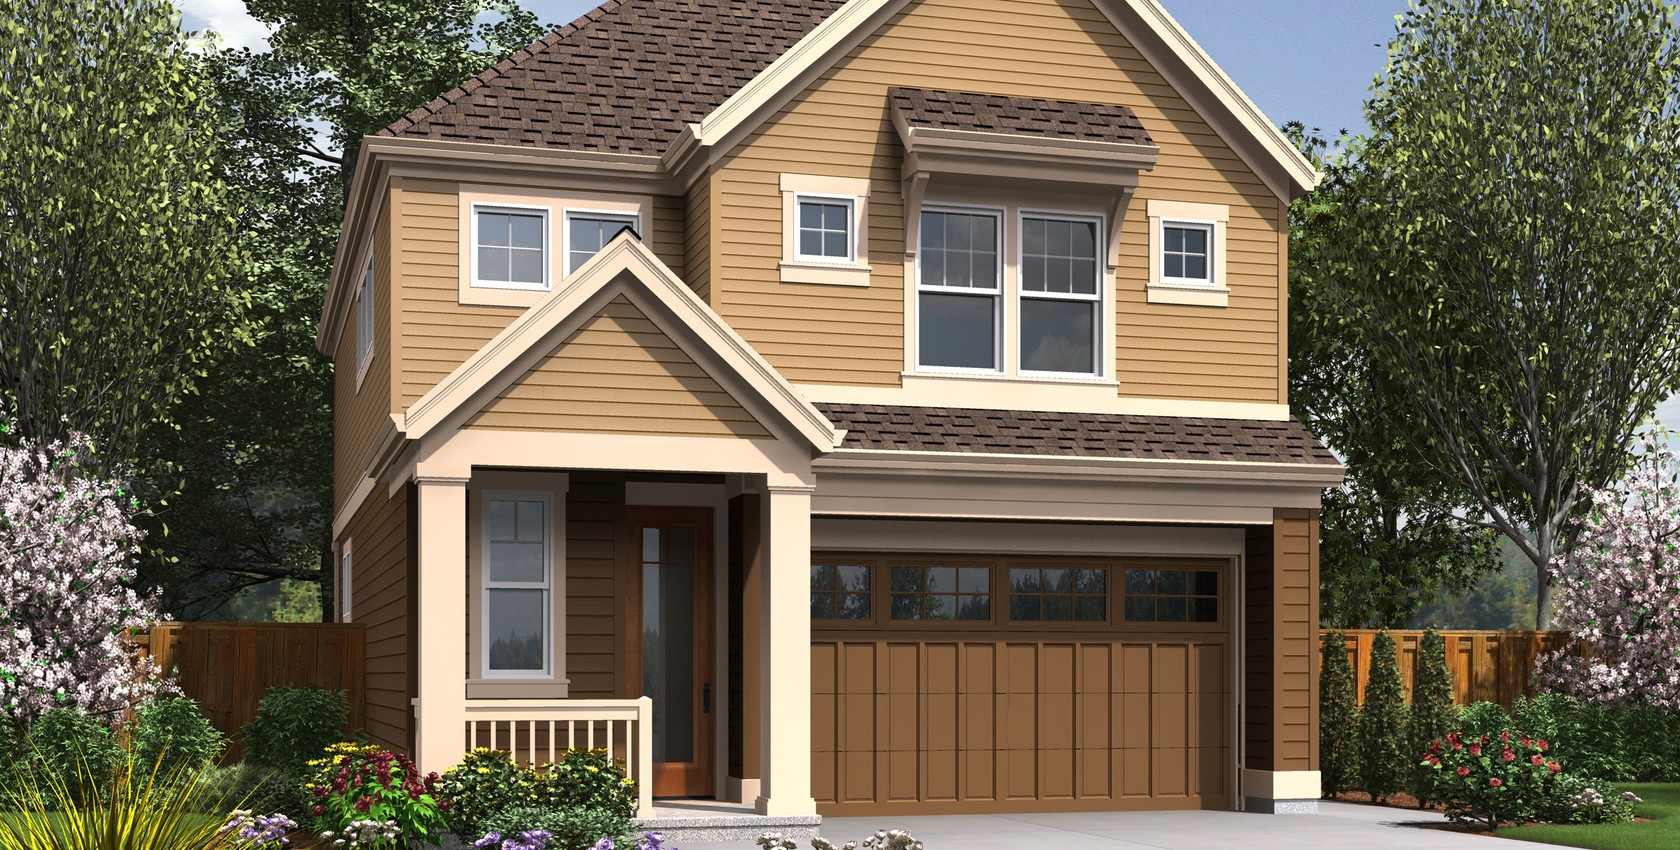 Image for Waldsport-Raise Your Family in a Beautiful Traditional Home  -4137